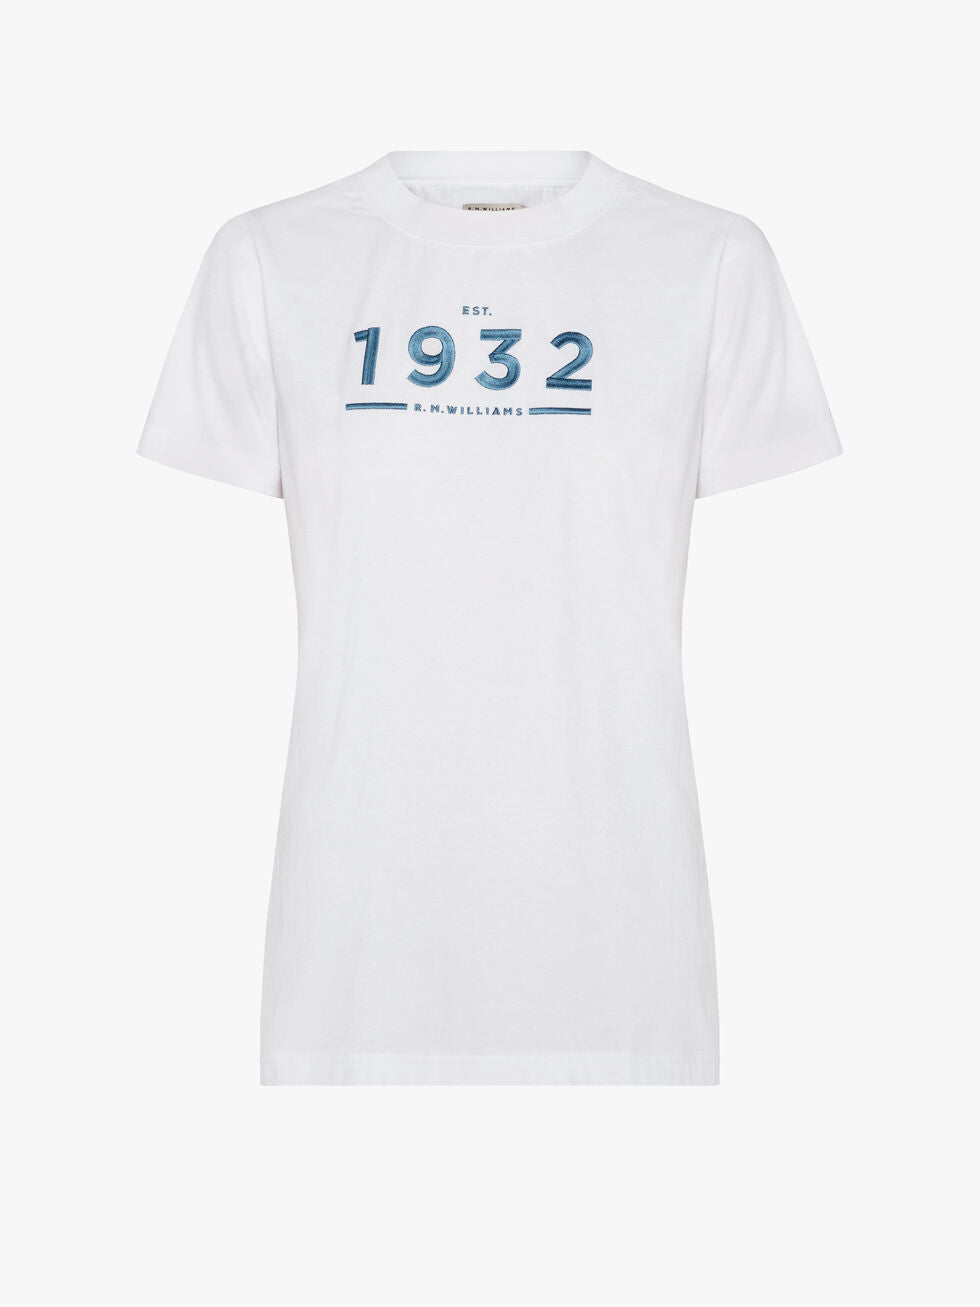 RMW Established in 1932 T-Shirt